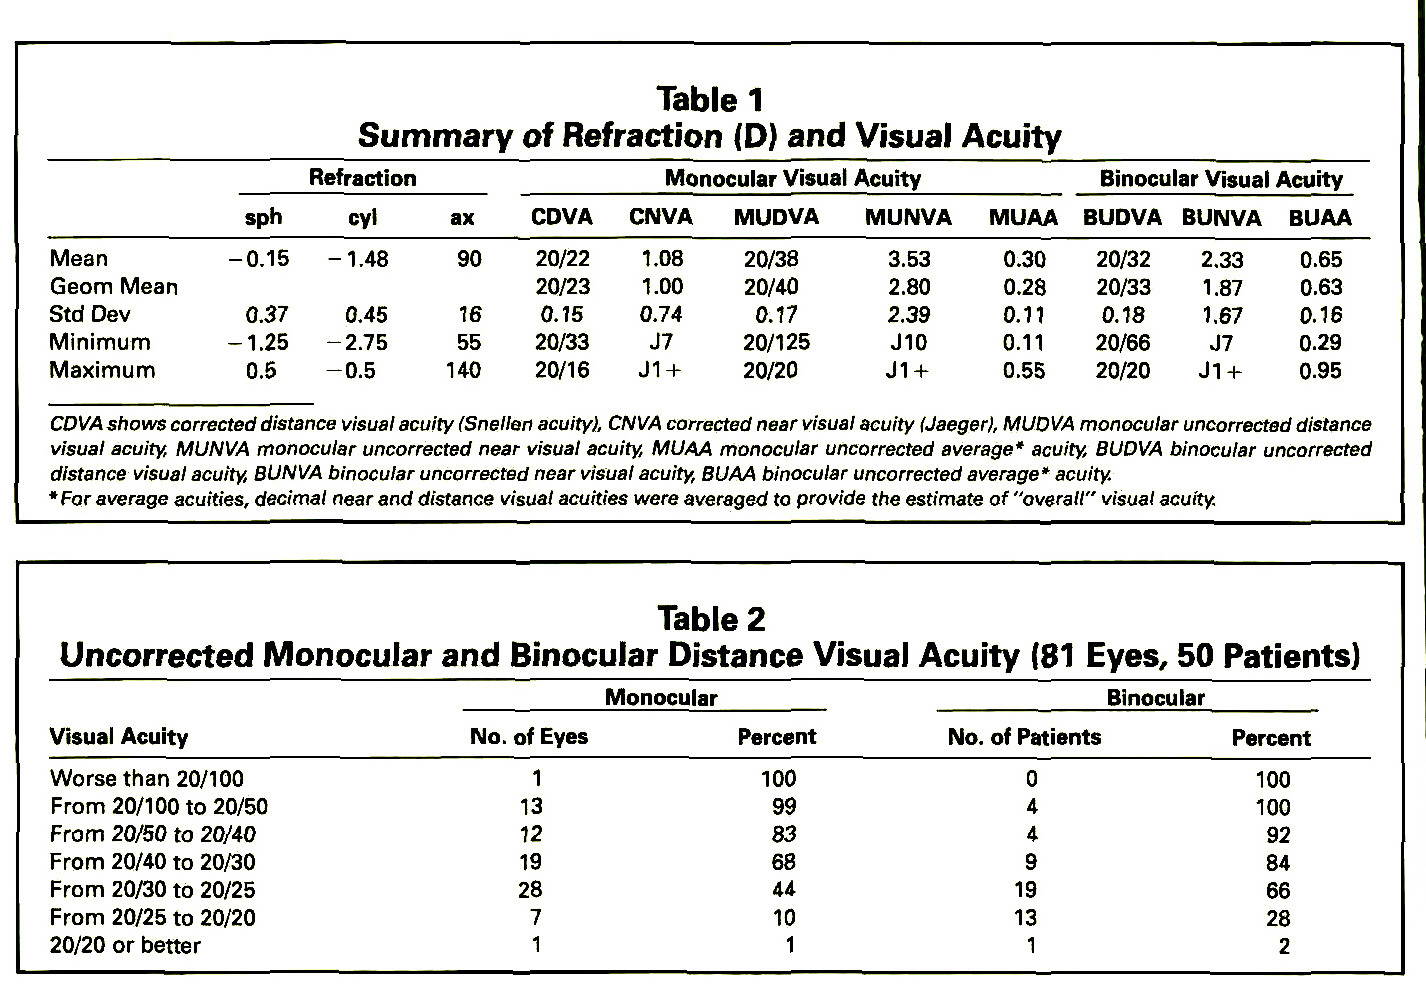 Table 1Summary of Refraction (D) and Visual AcuityTable 2Uncorrected Monocular and Binocular Distance Visual Acuity (81 Eyes, 50 Patients)